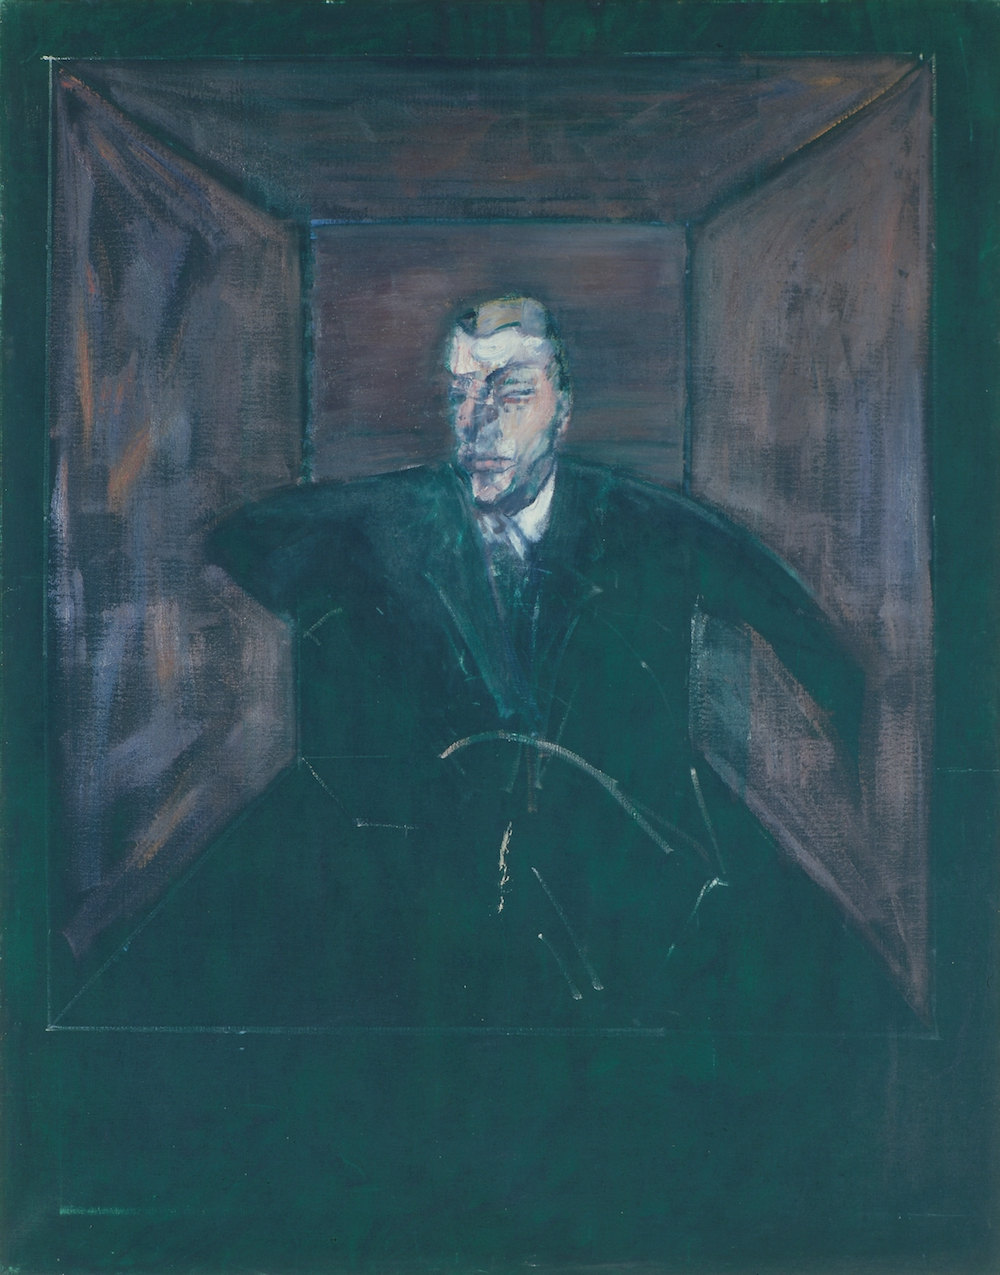 Francis Bacon Ellen Gallagher Hatton Gallery Newcastle